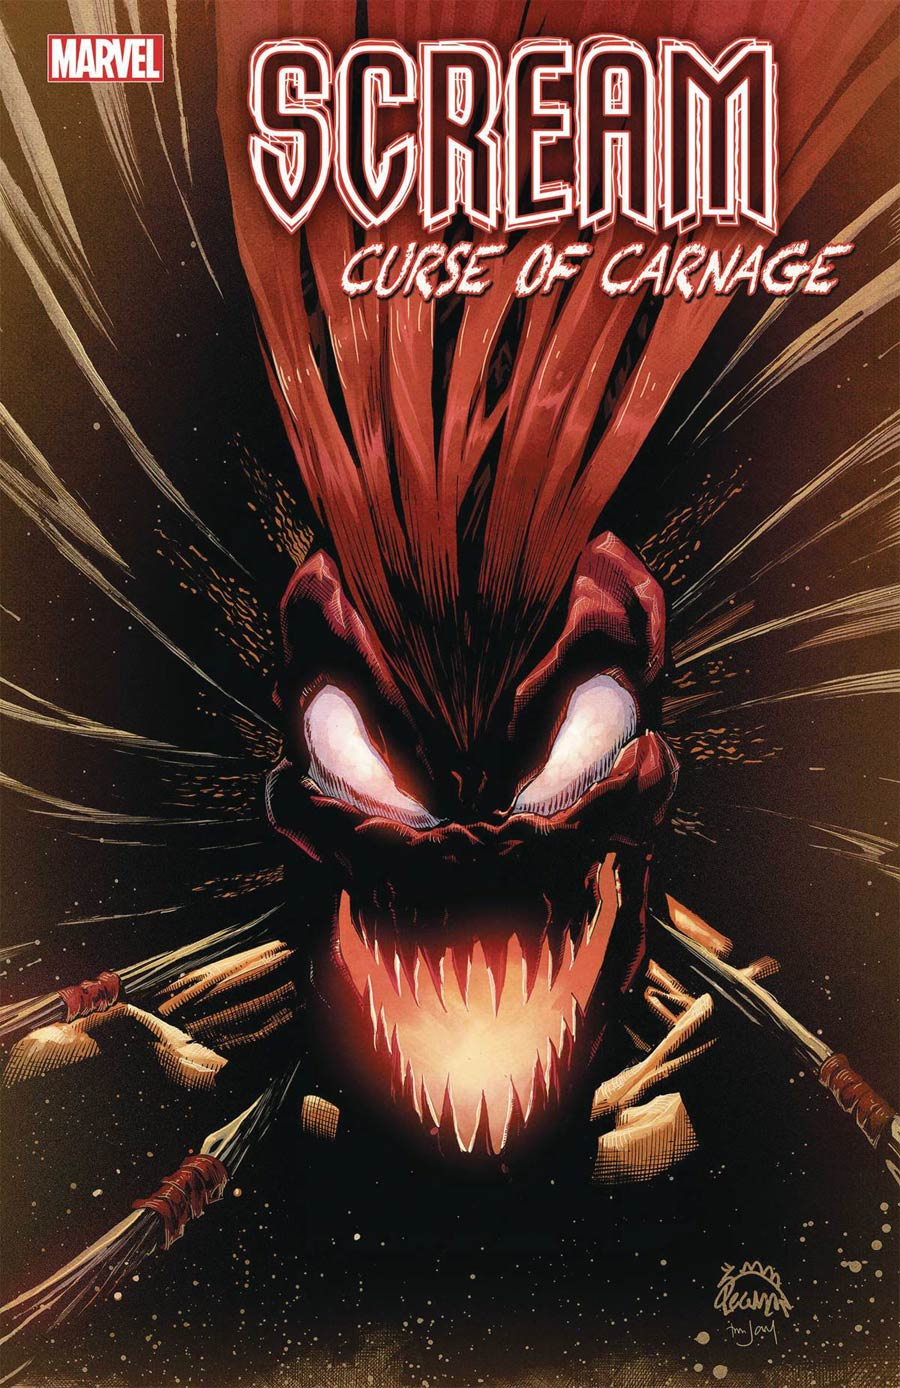 Scream Curse Of Carnage #5 Cover A Regular Ryan Stegman Cover